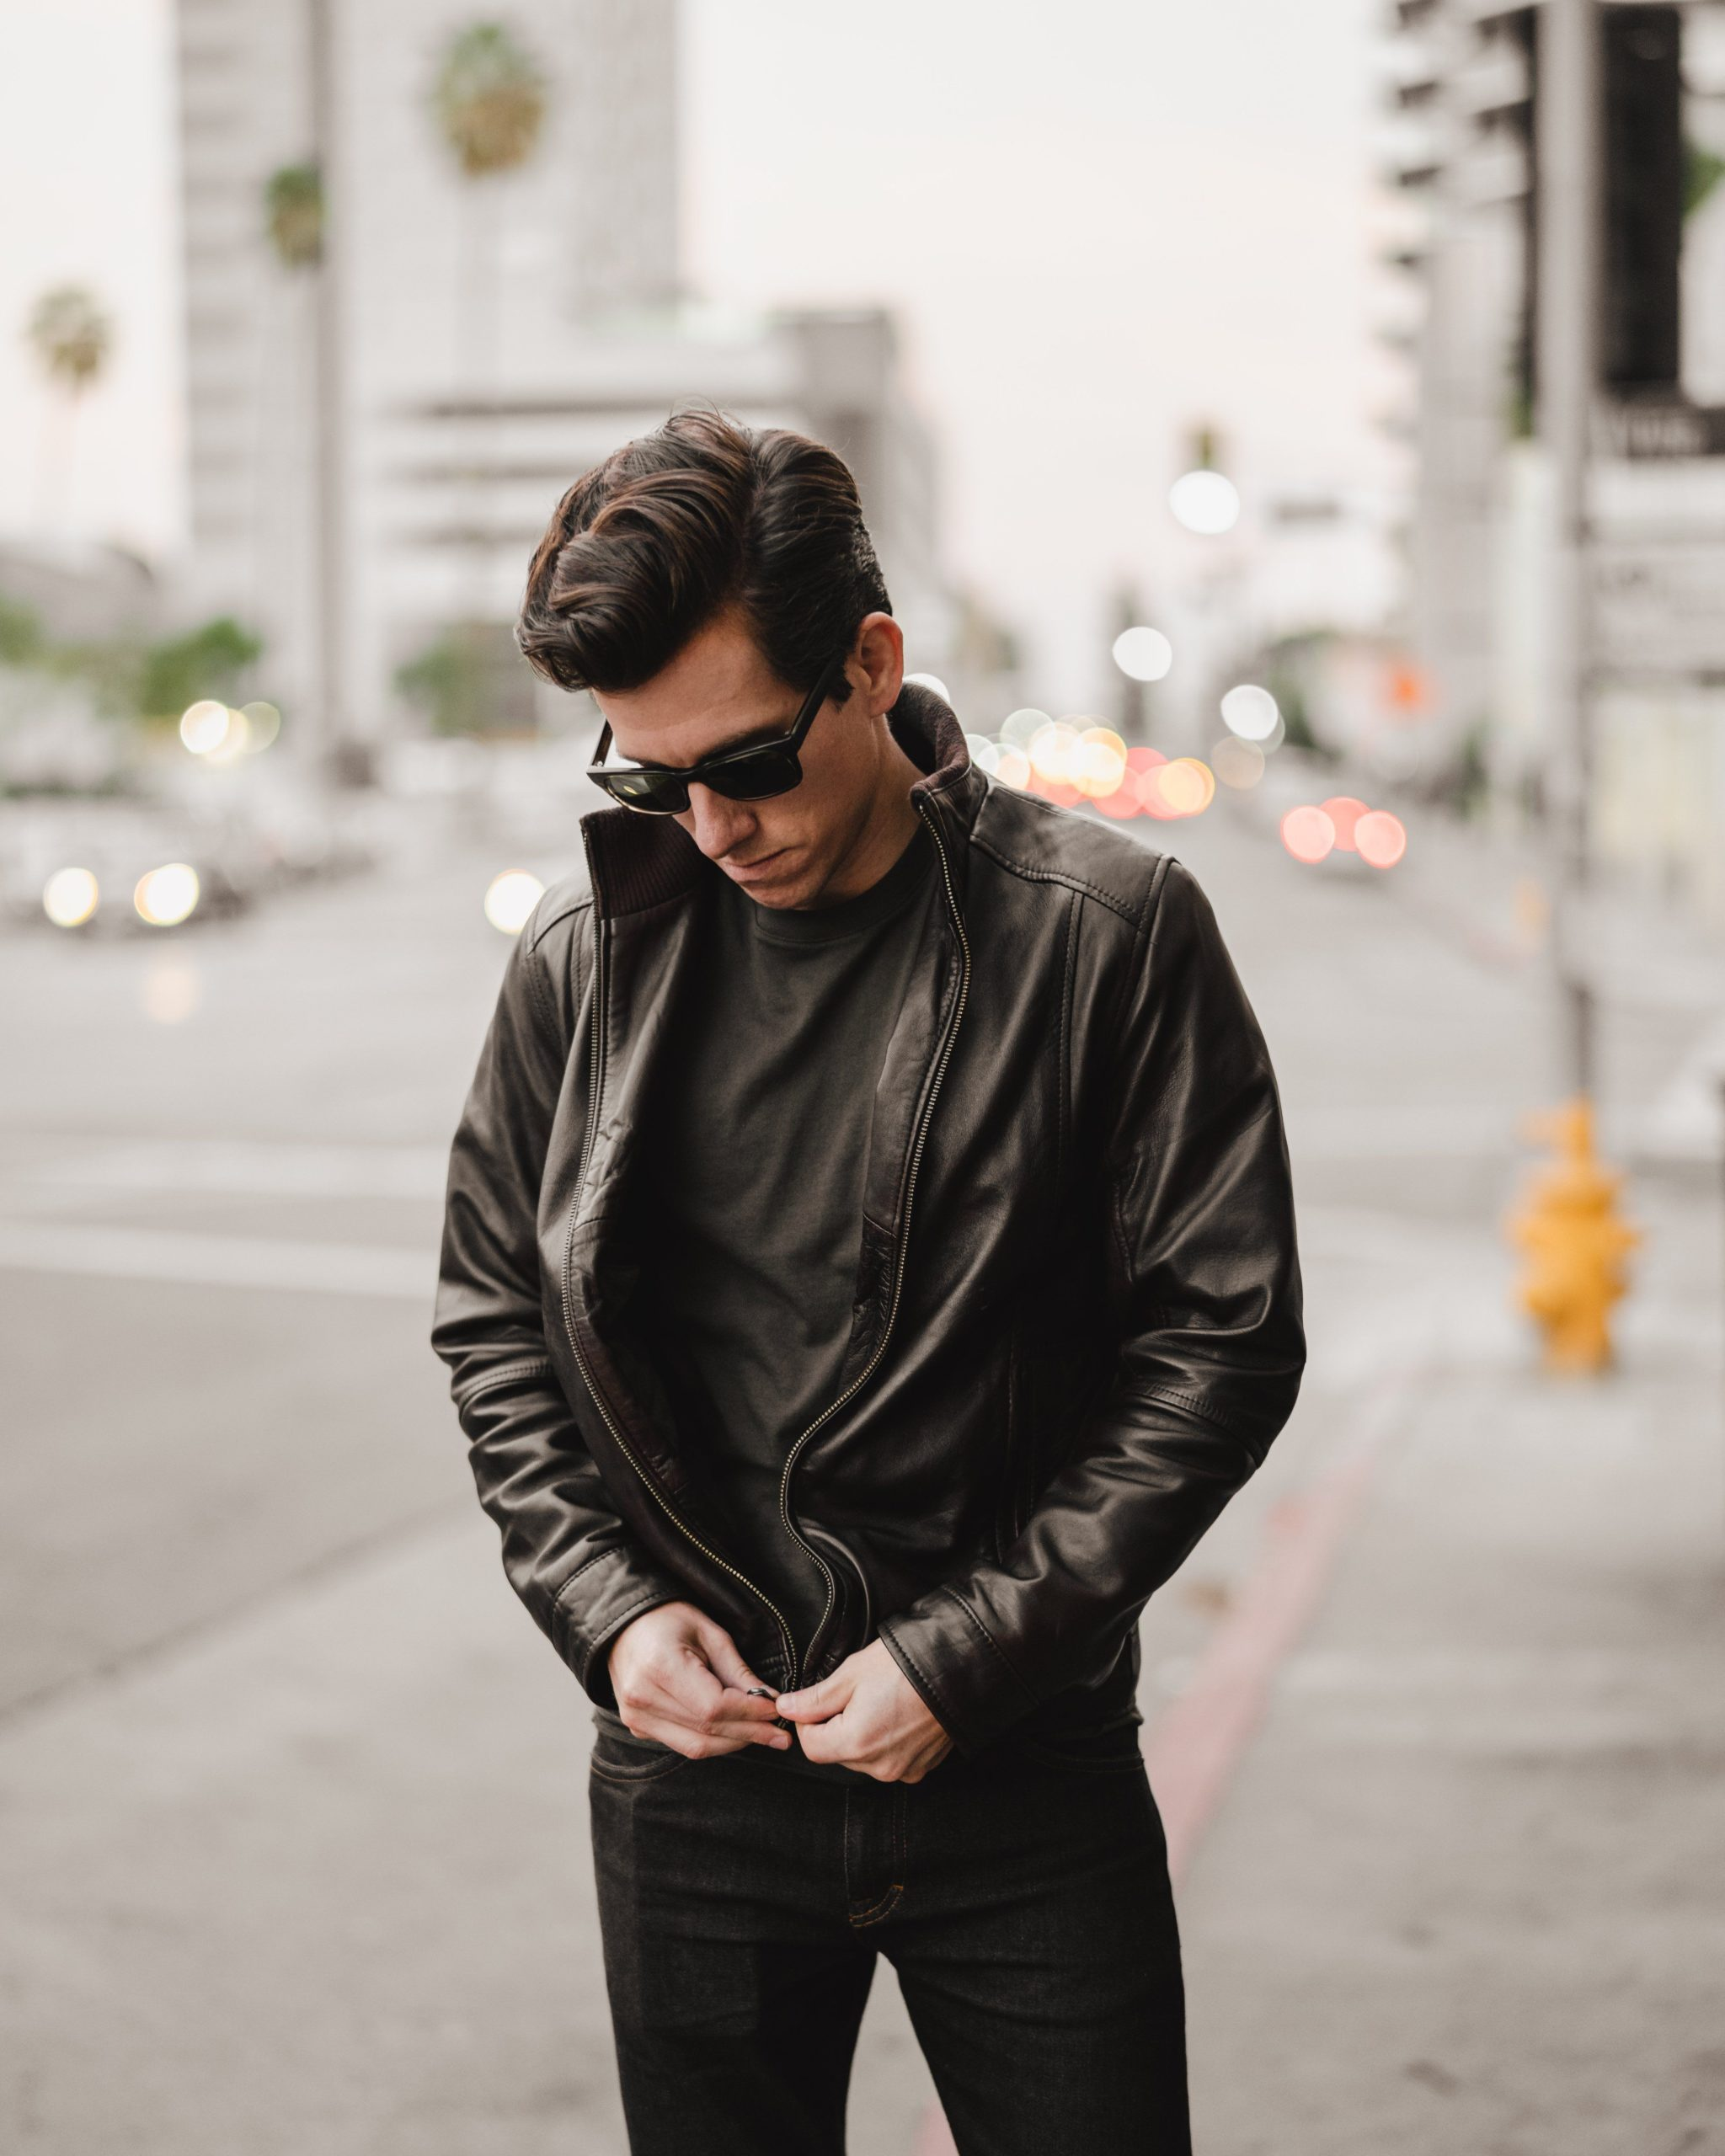 9 male YouTubers to follow for men's fashion inspo